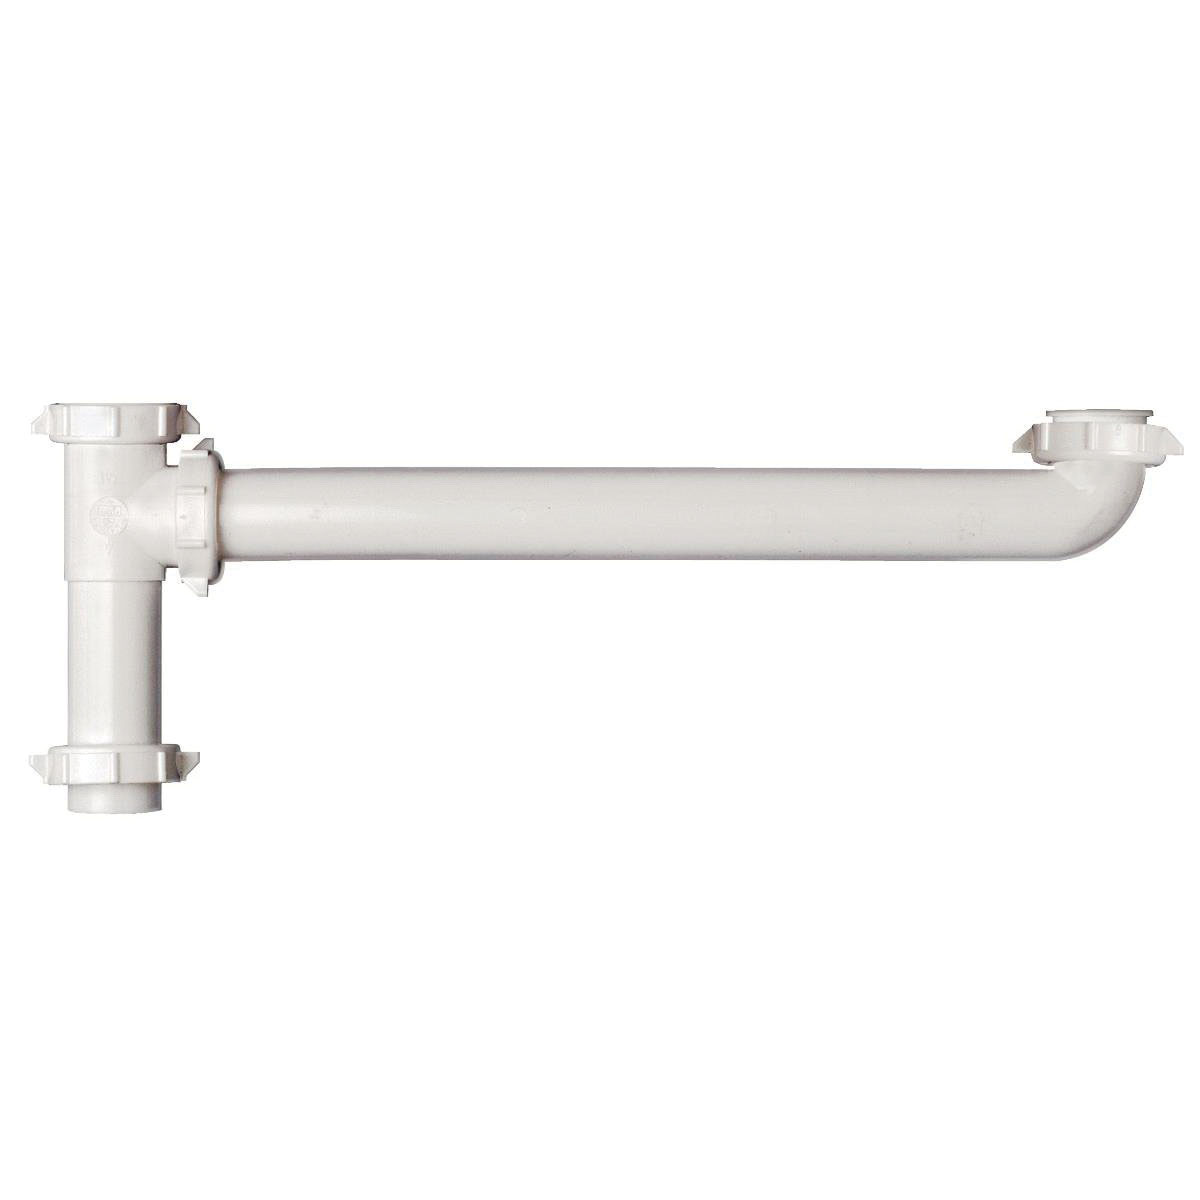 Keeney 122TTW White Plastic End Outlet Continuous Waste, Slip Joint/Direct Connect